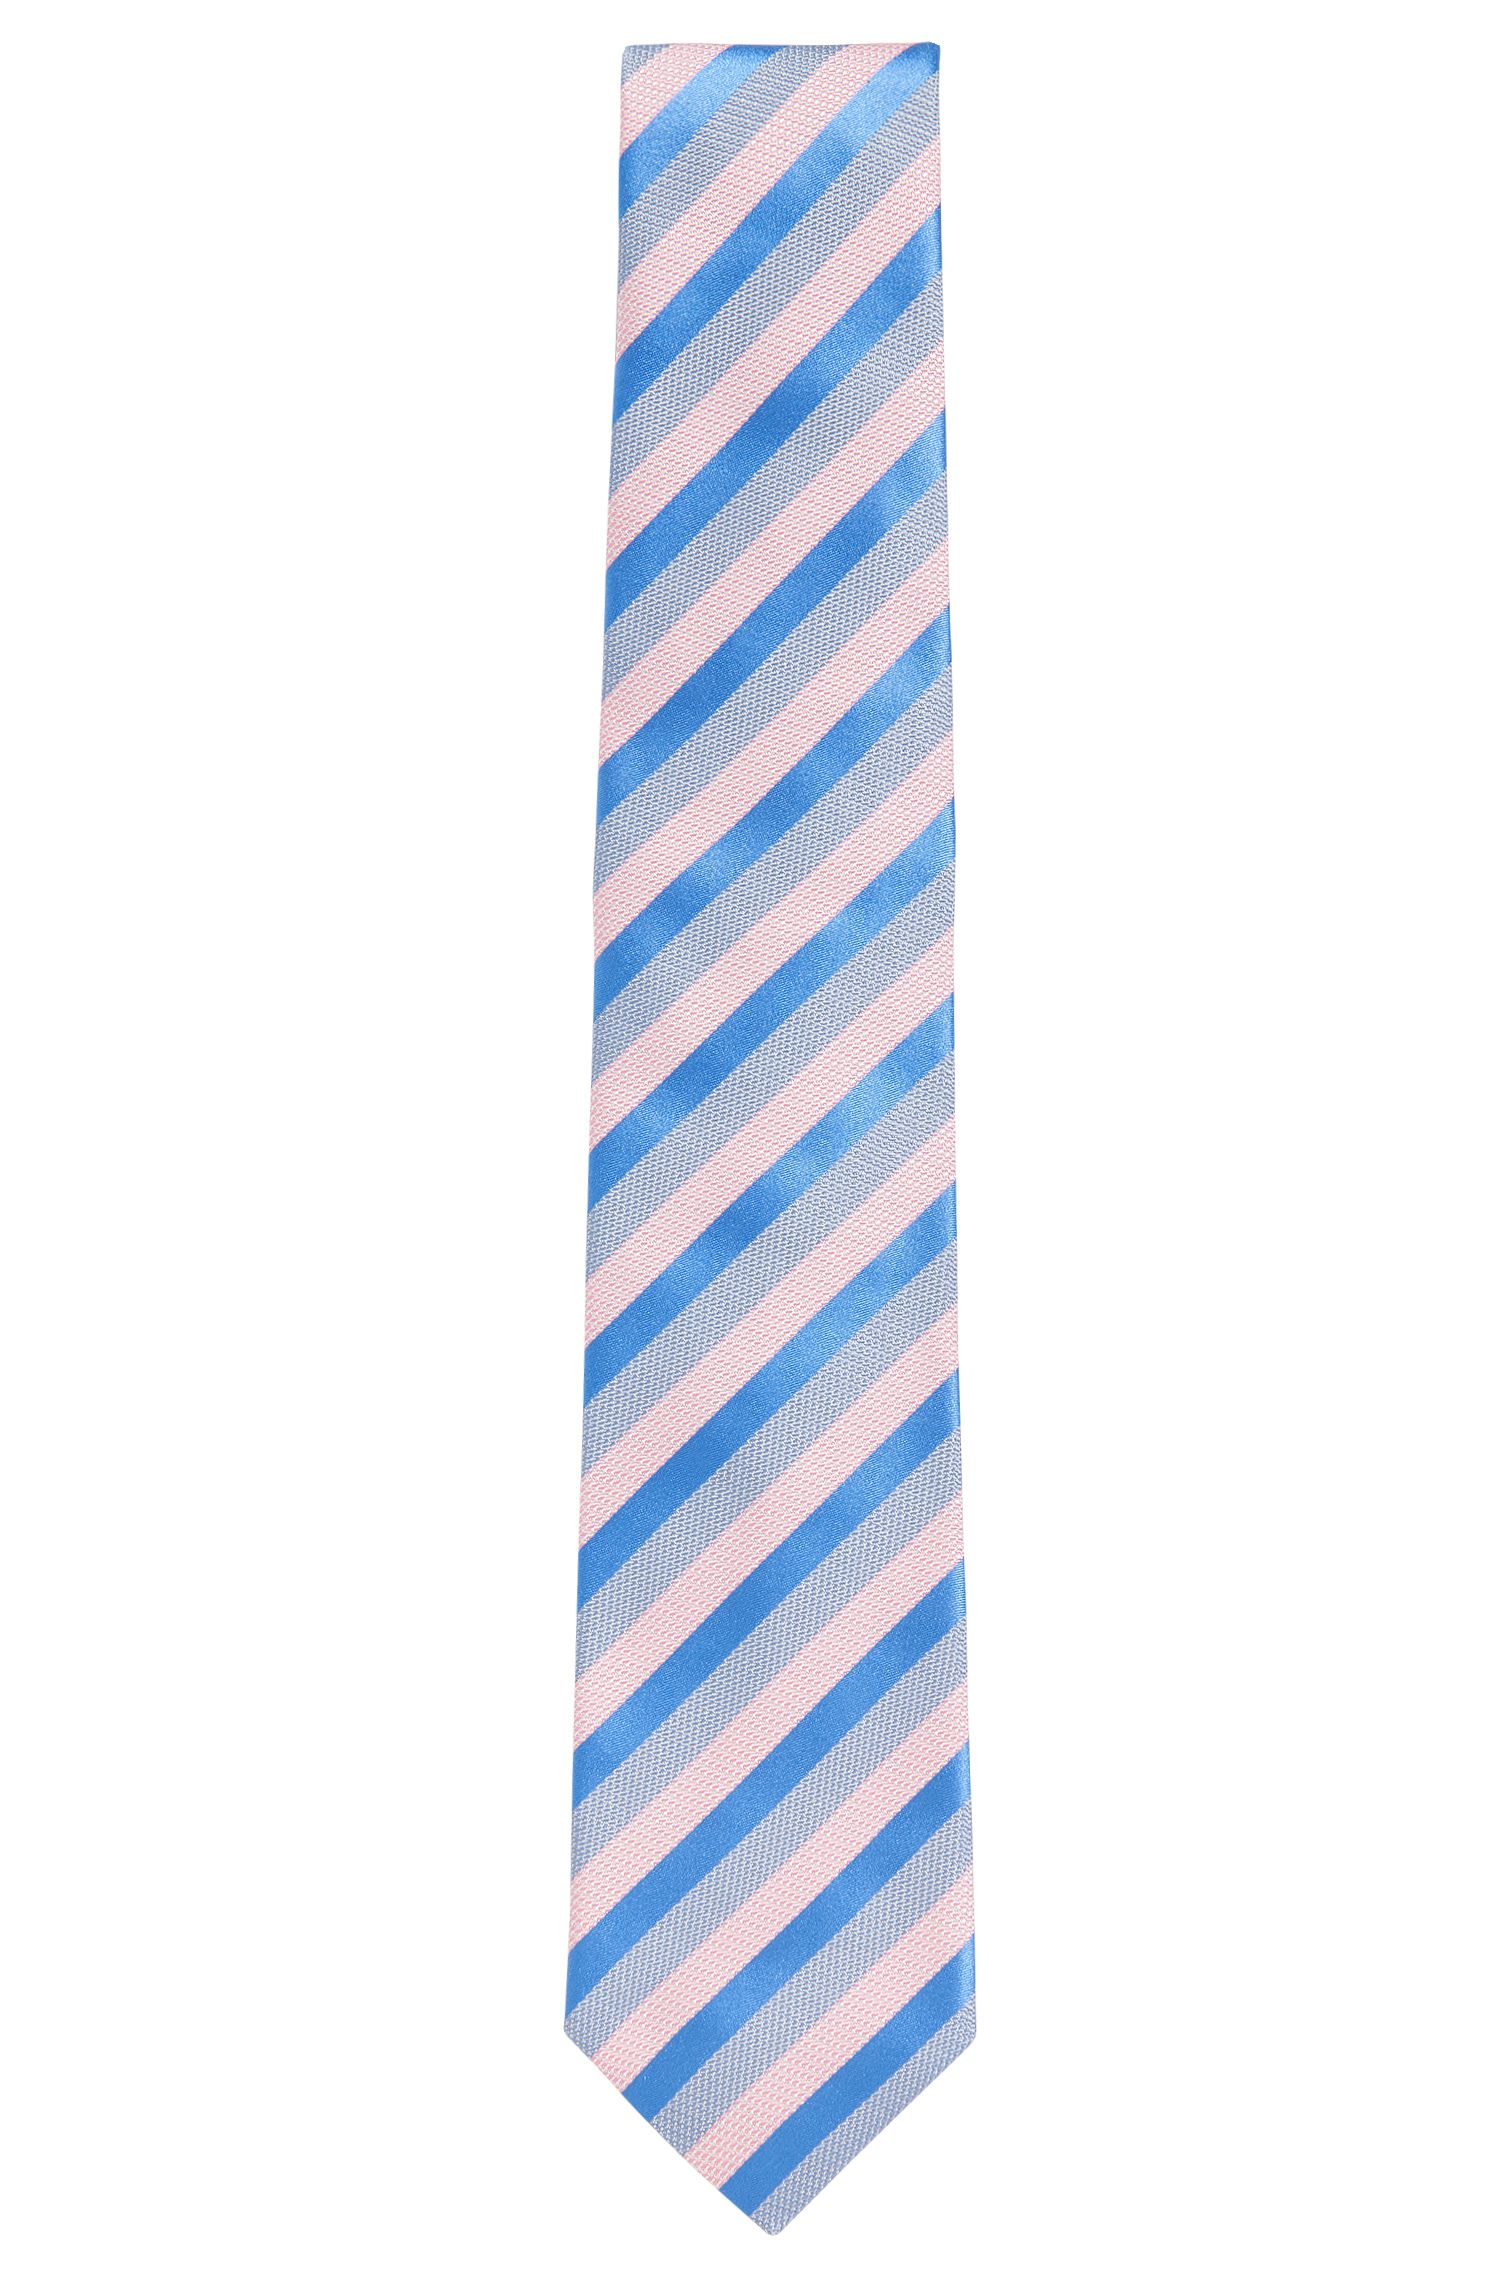 'Tie 7.5 cm' | Regular, Silk Patterned Tie